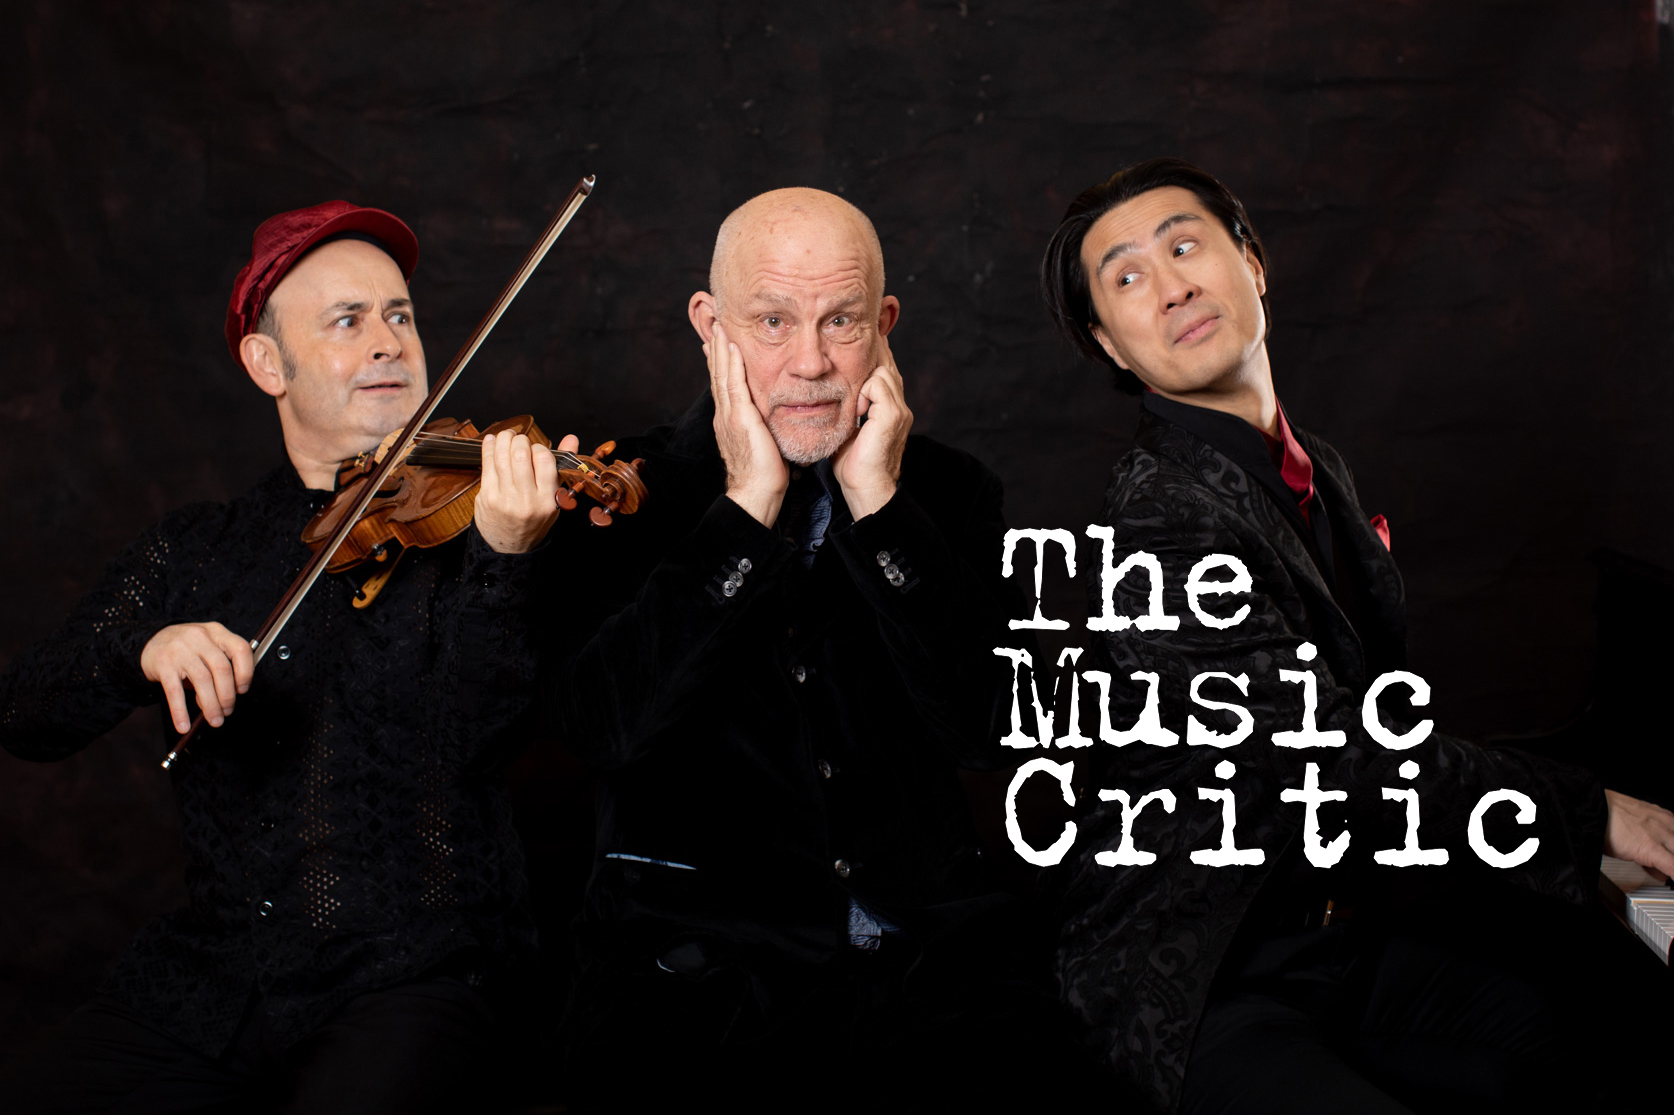 The Music Critic out now!